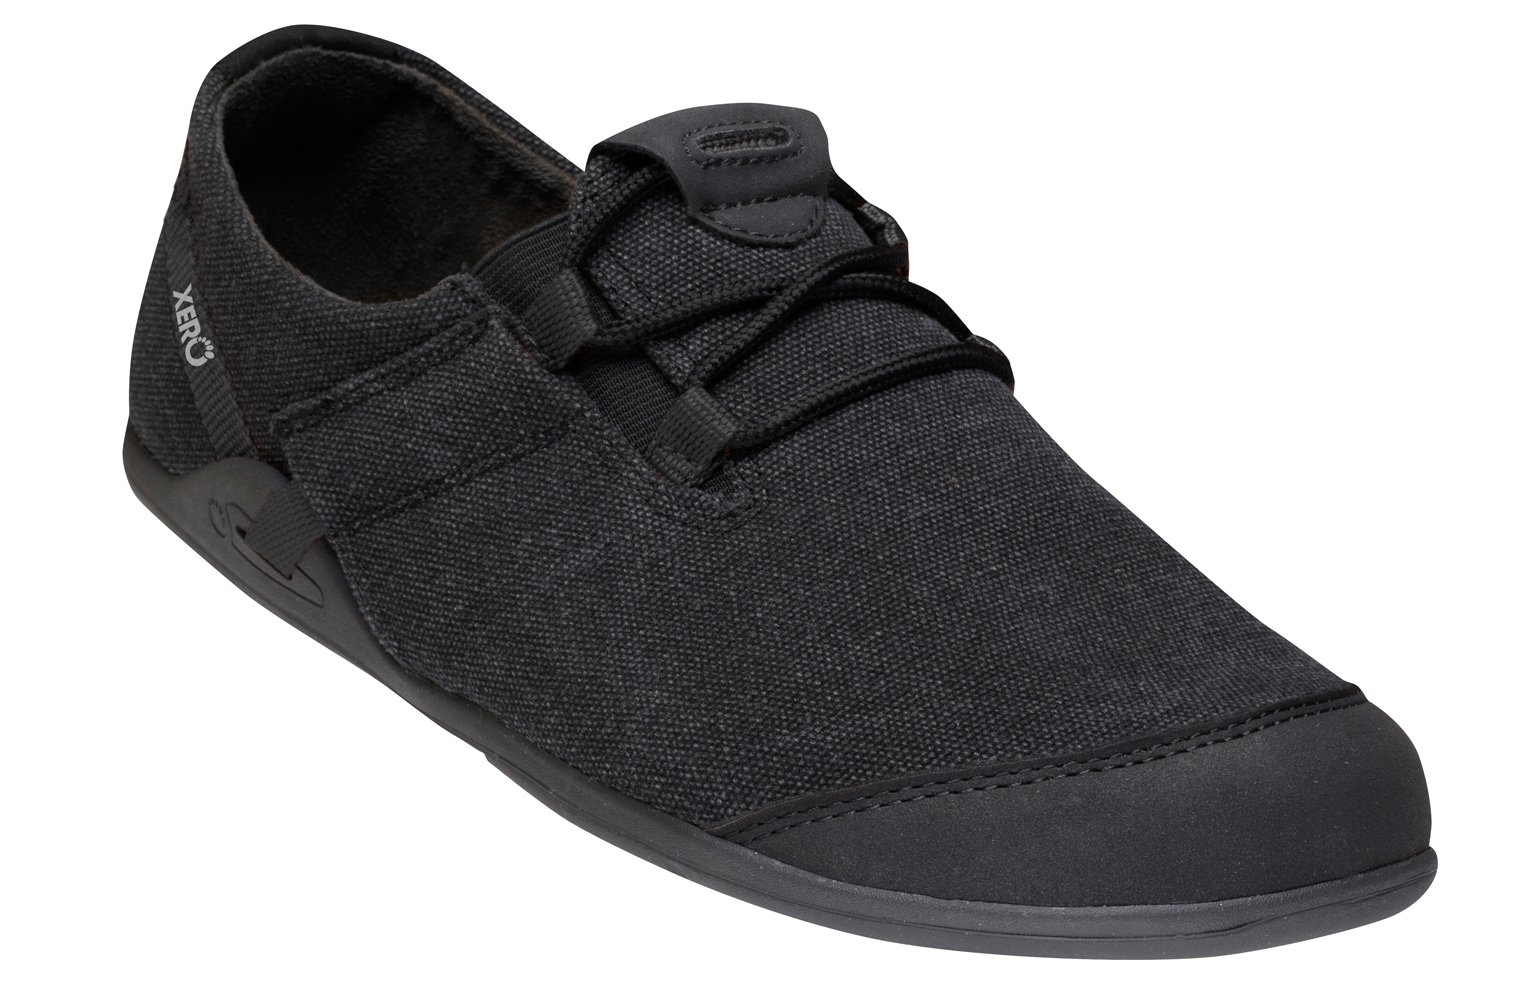 Xero Shoes Casual Canvas Barefoot-Inspired Shoe - Men's Hana,Black/Black,11 D(M) US